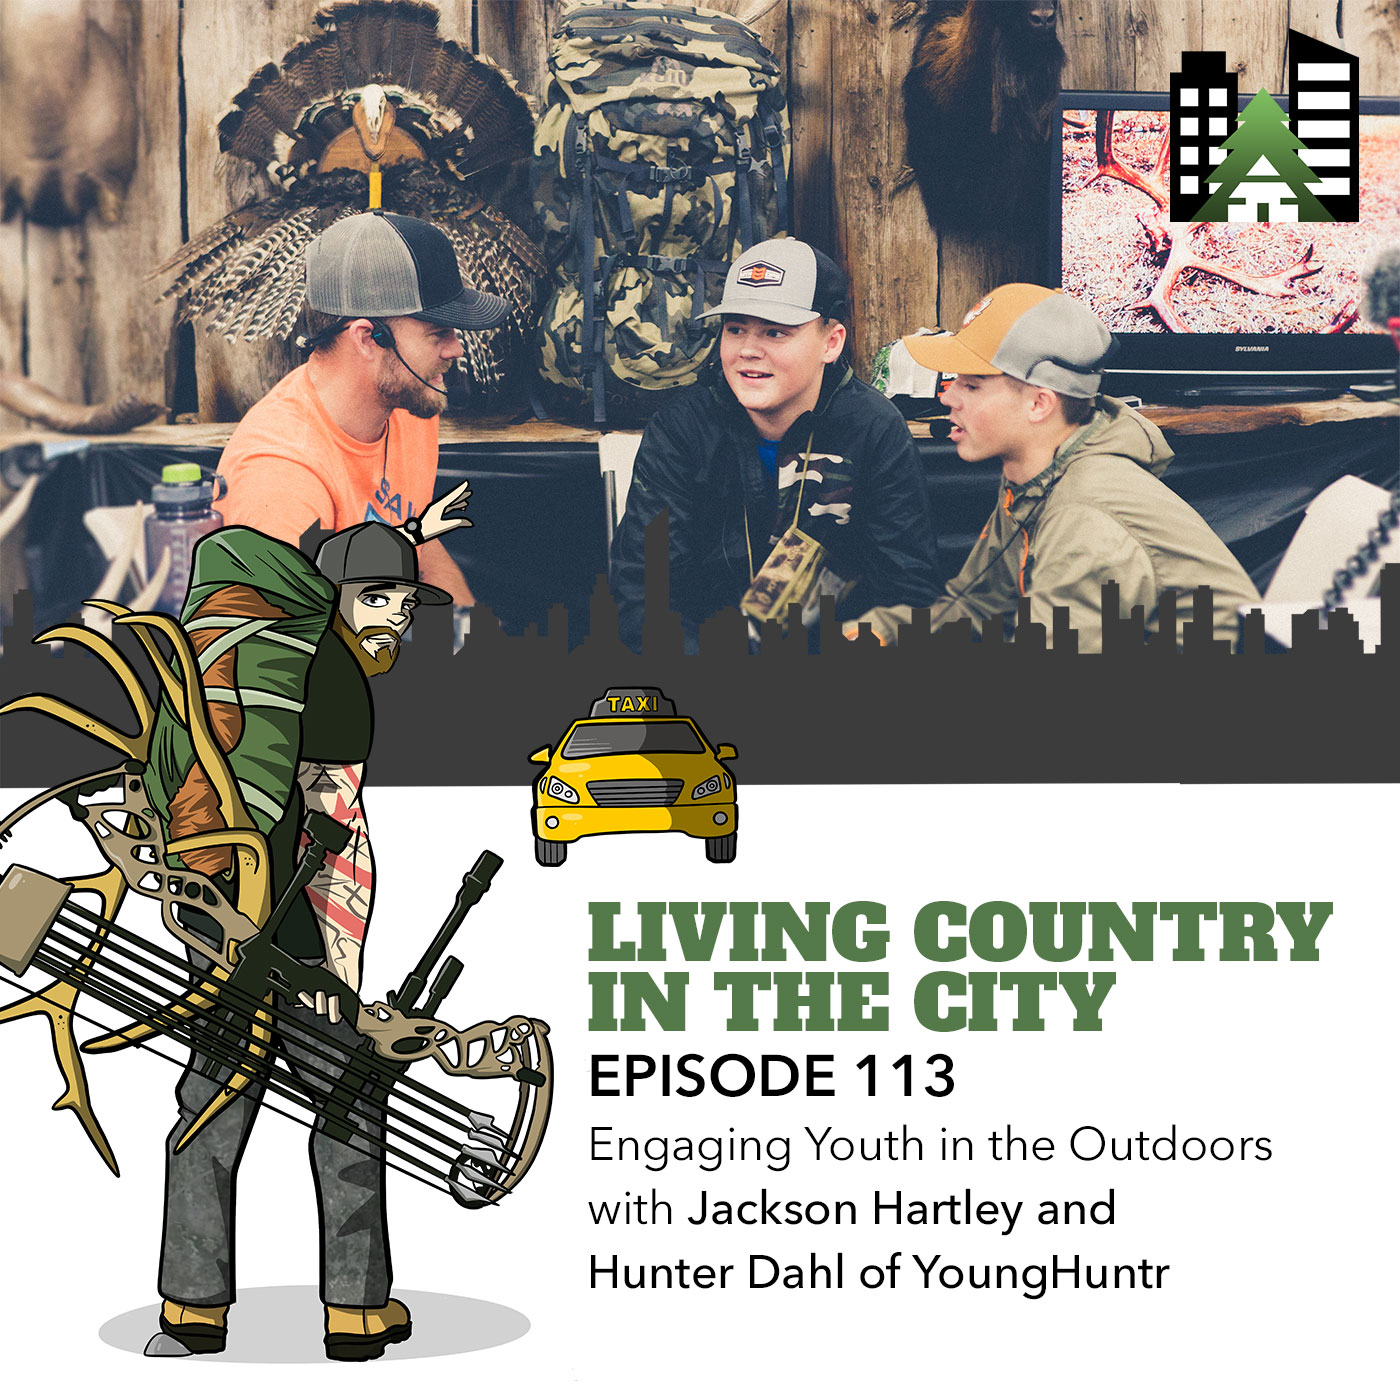 Living Country in the City - Episode 113 - Engaging Youth in the Outdoors with Jackson Hartley and Hunter Dahl of YoungHuntr.